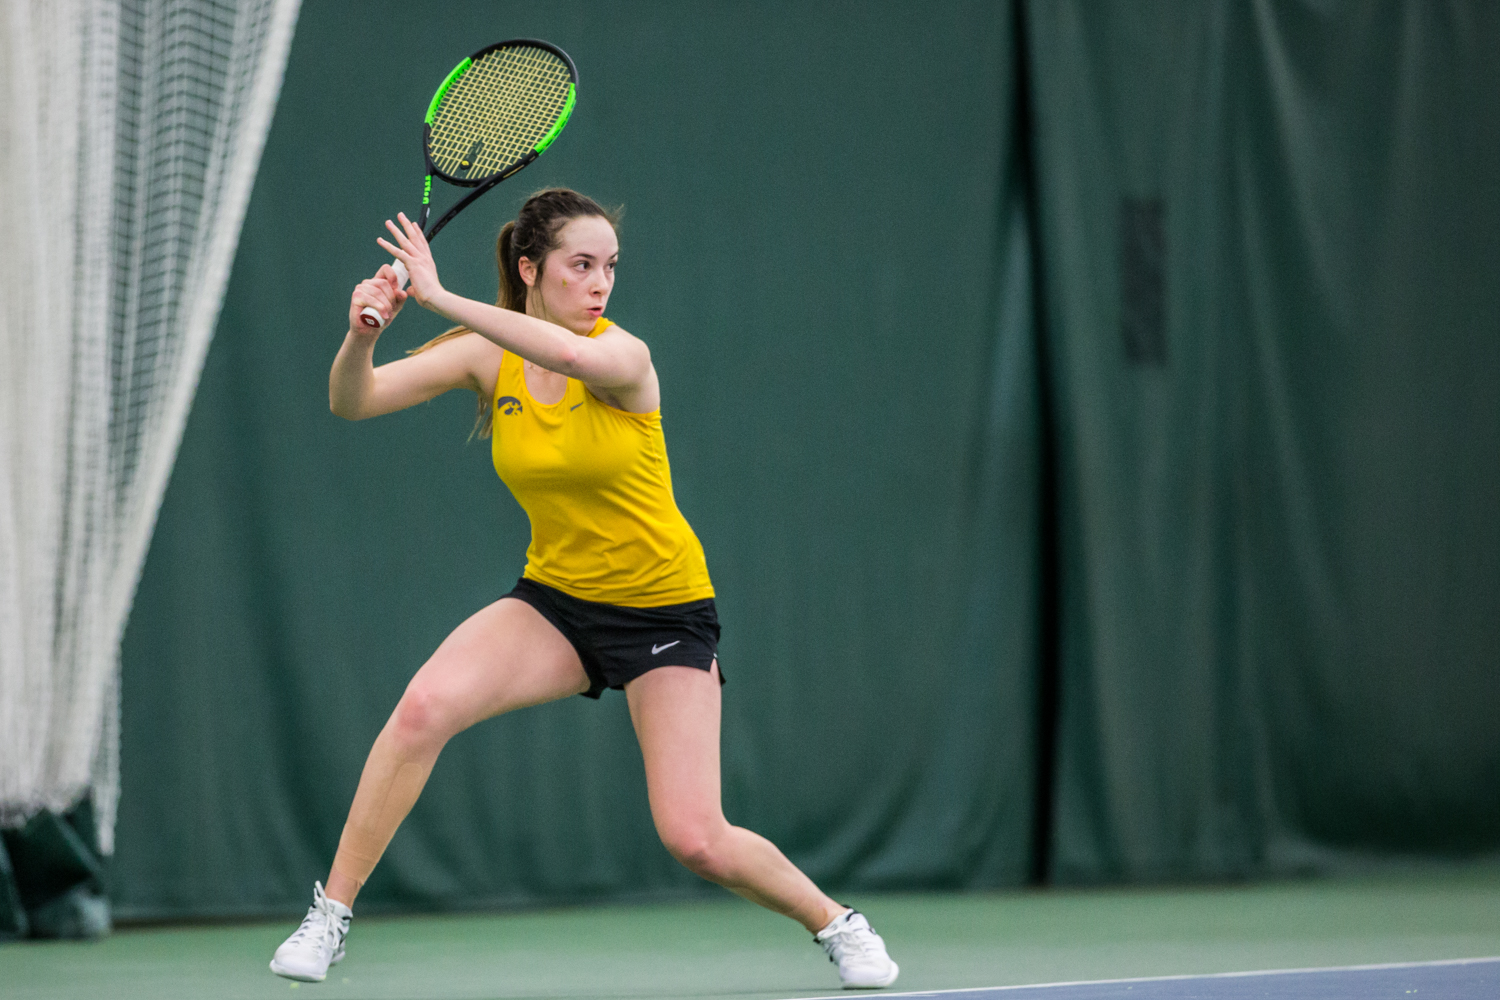 Iowa's Samantha Mannix hits a forehand during a women's tennis matchup between Iowa and Iowa State at the Hawkeye Tennis and Recreation Complex on Friday, February 8, 2019.  The Hawkeyes dropped the doubles point but swept singles matches, defeating the Cyclones 4-1.